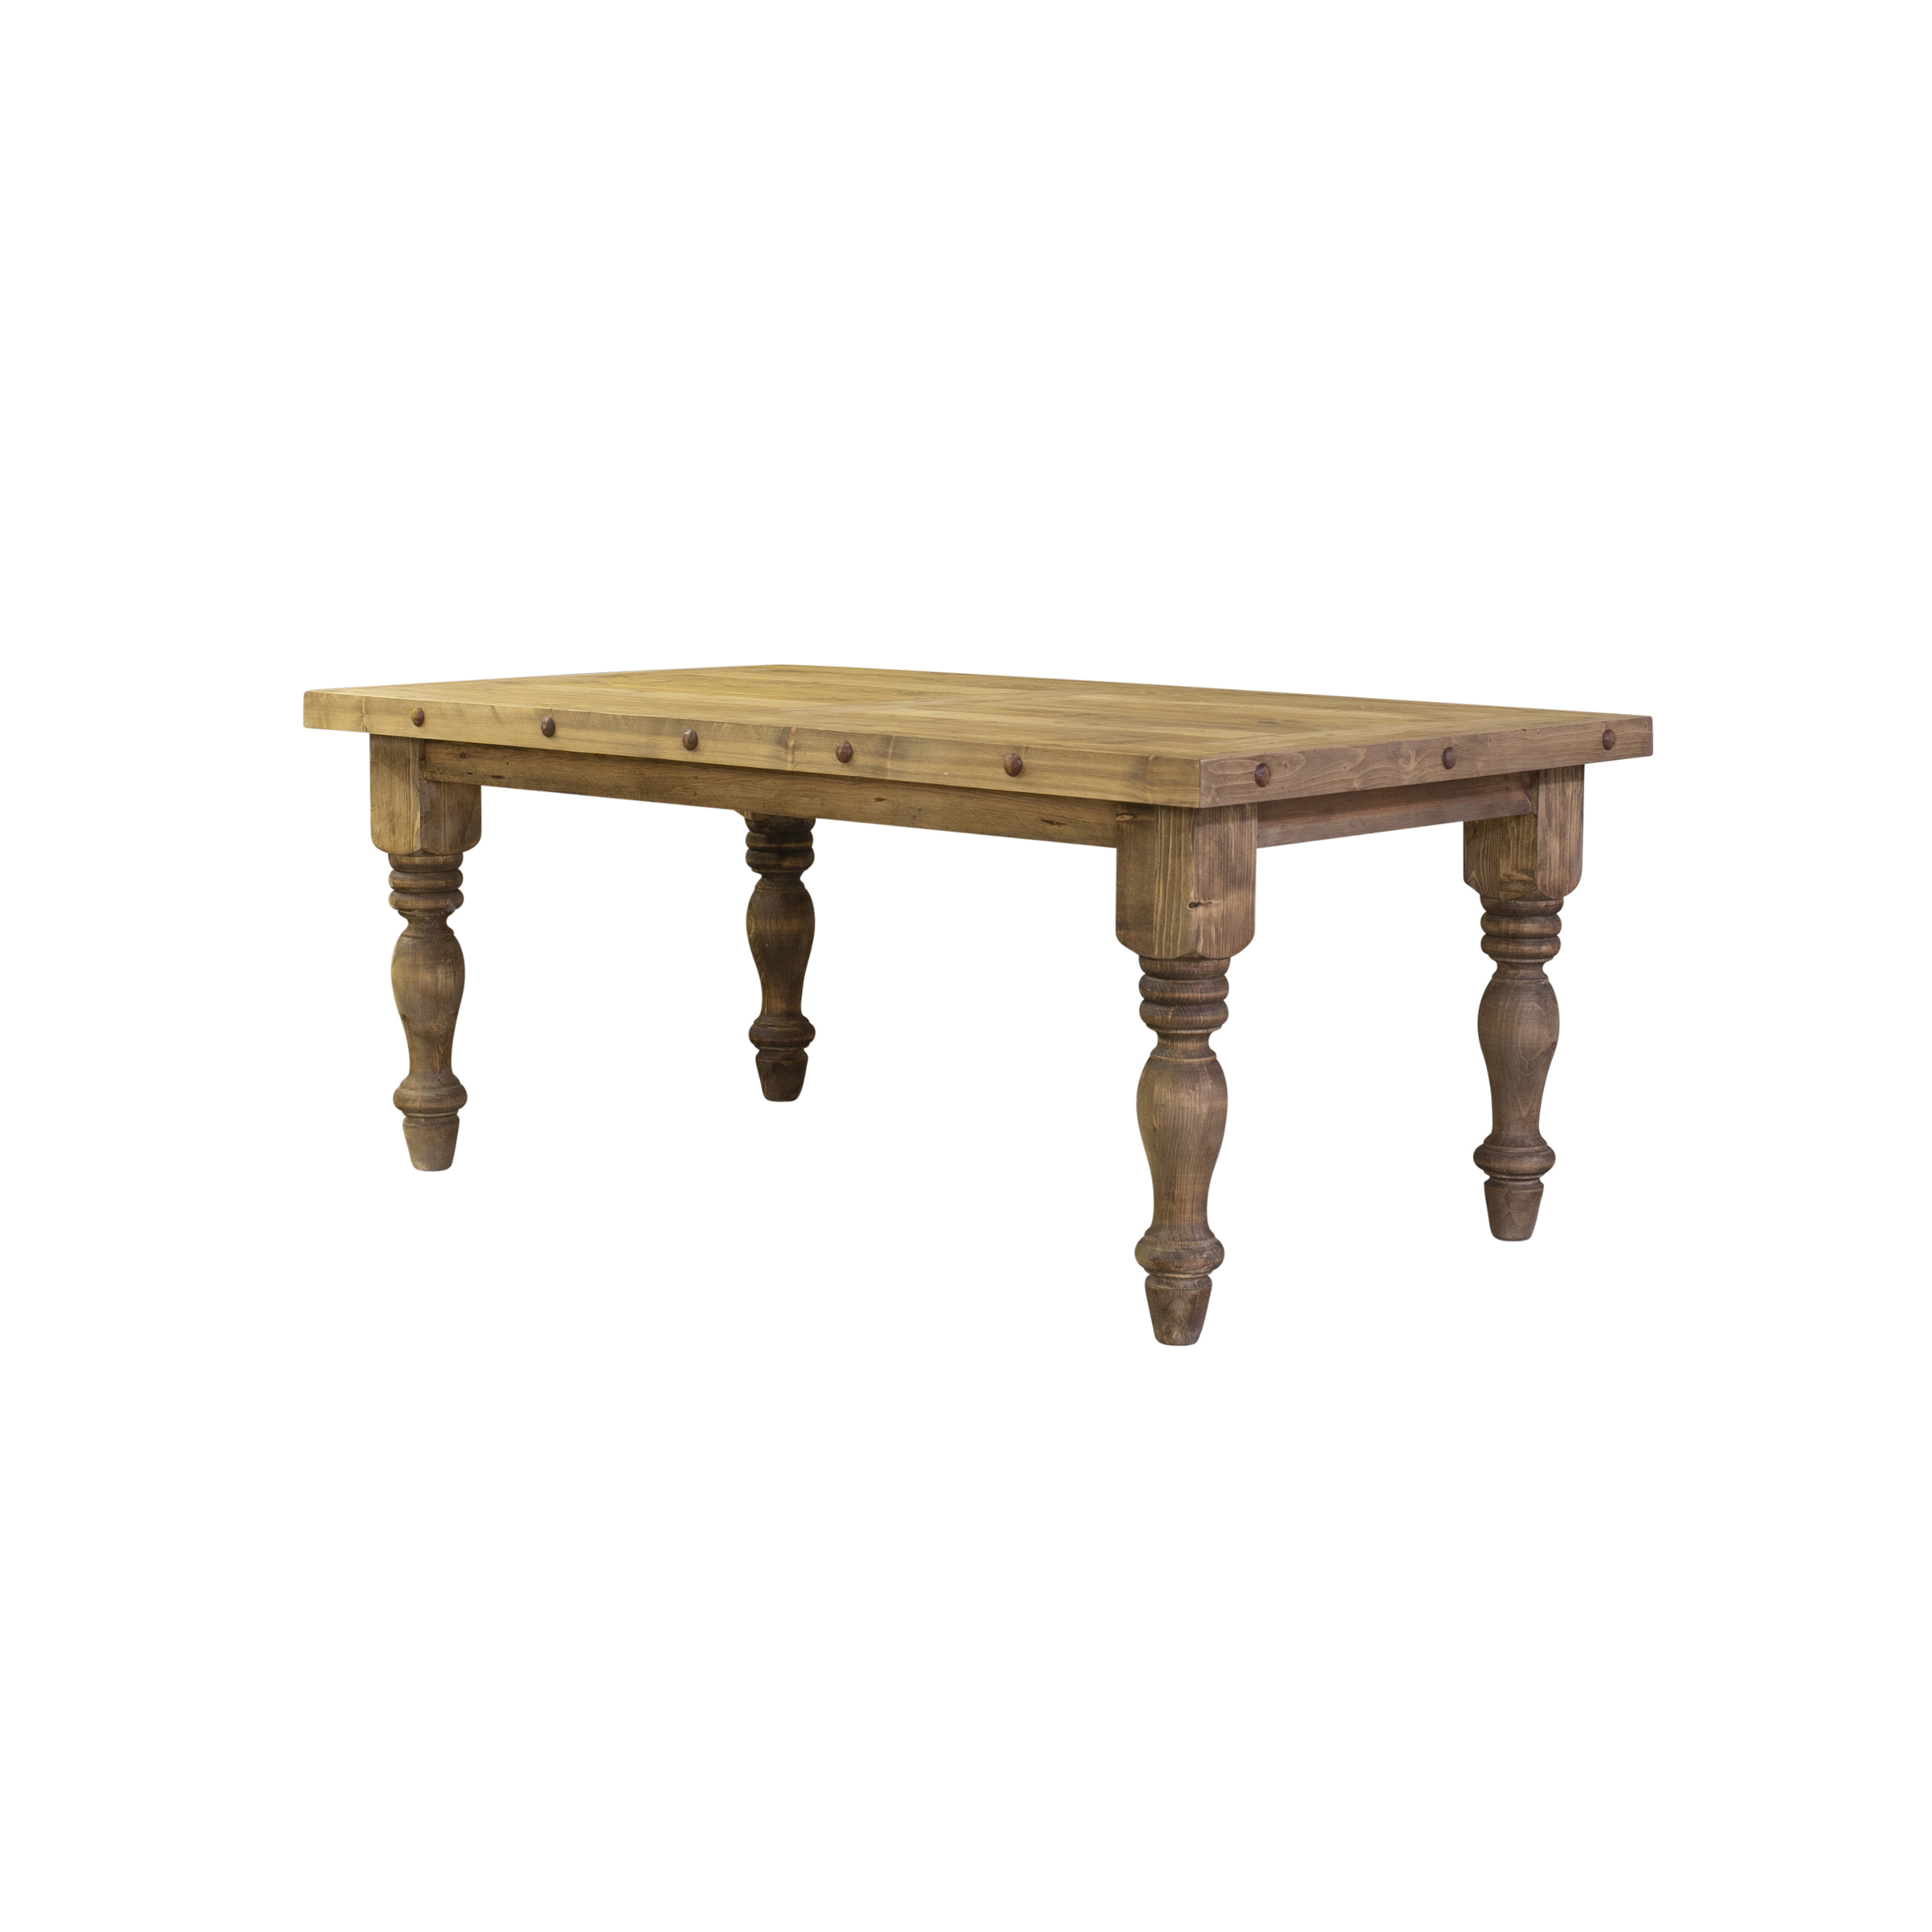 Magnolia rustic dining table side angle